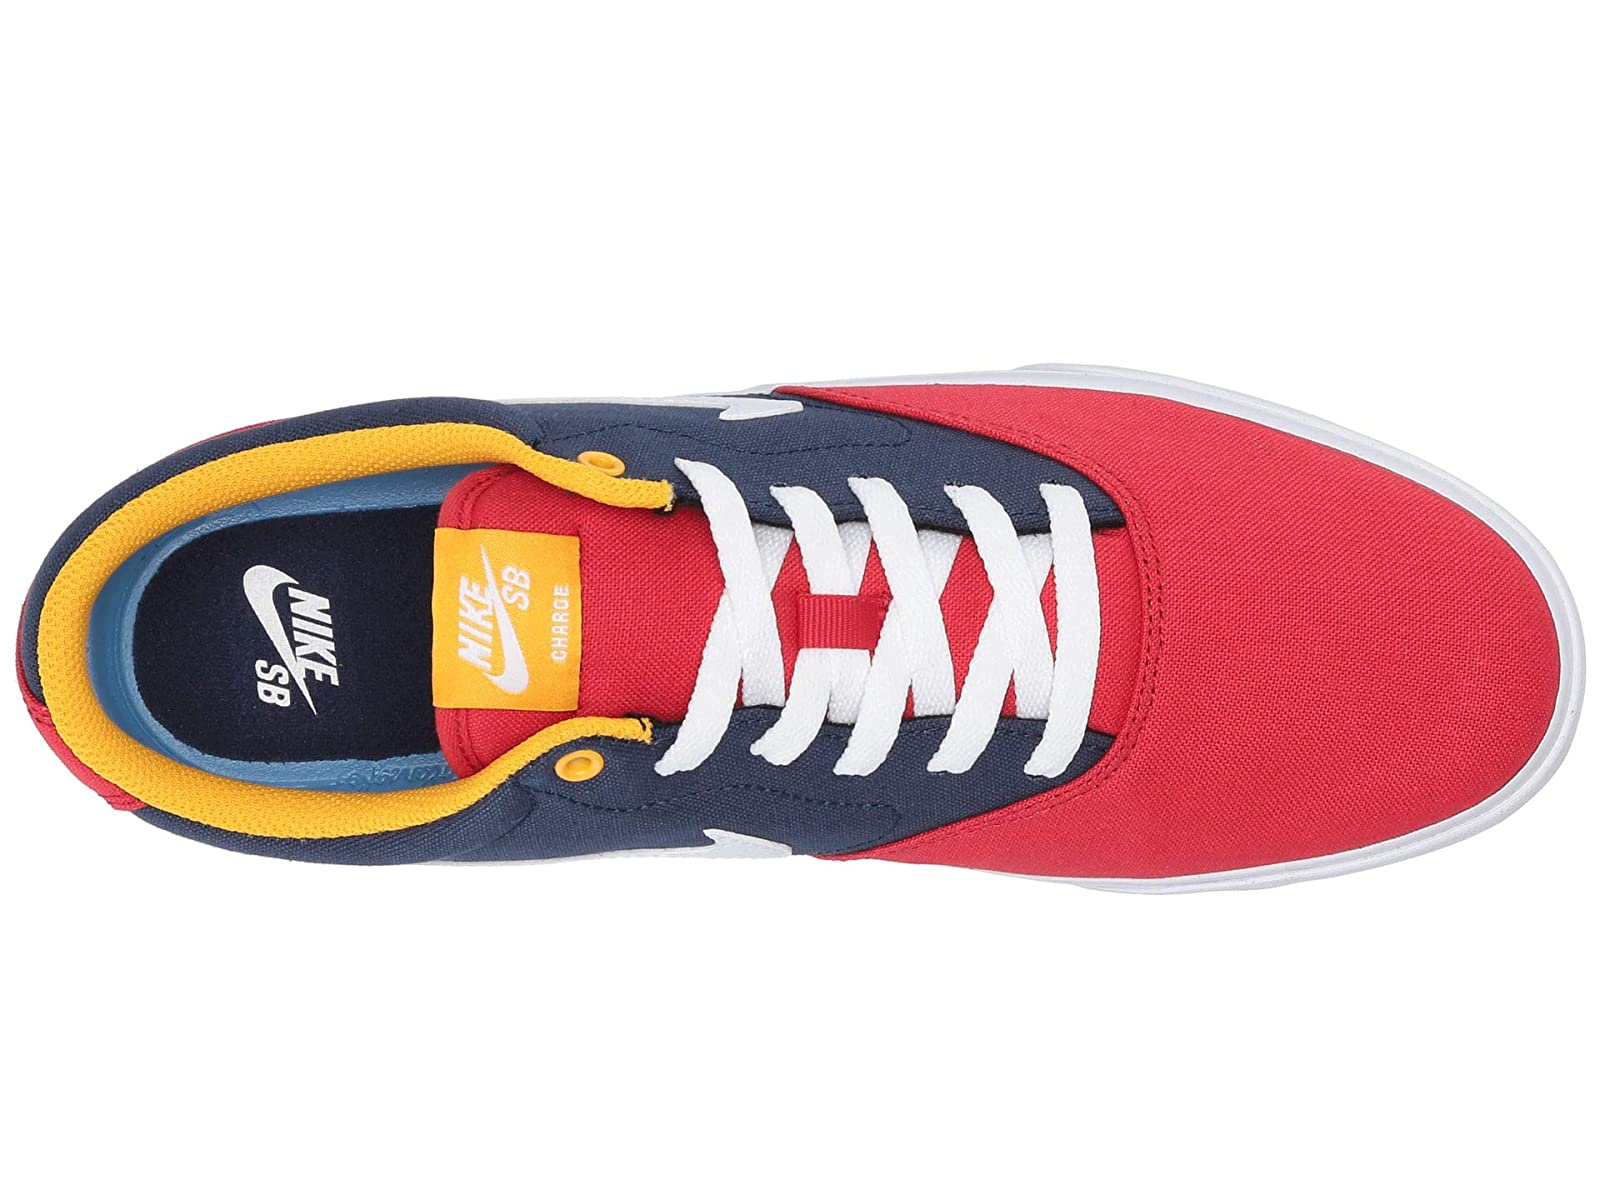 Shoes Solarsoft Man's Canvas Details about SB Nike SneakersAthletic Charge 345LjARq